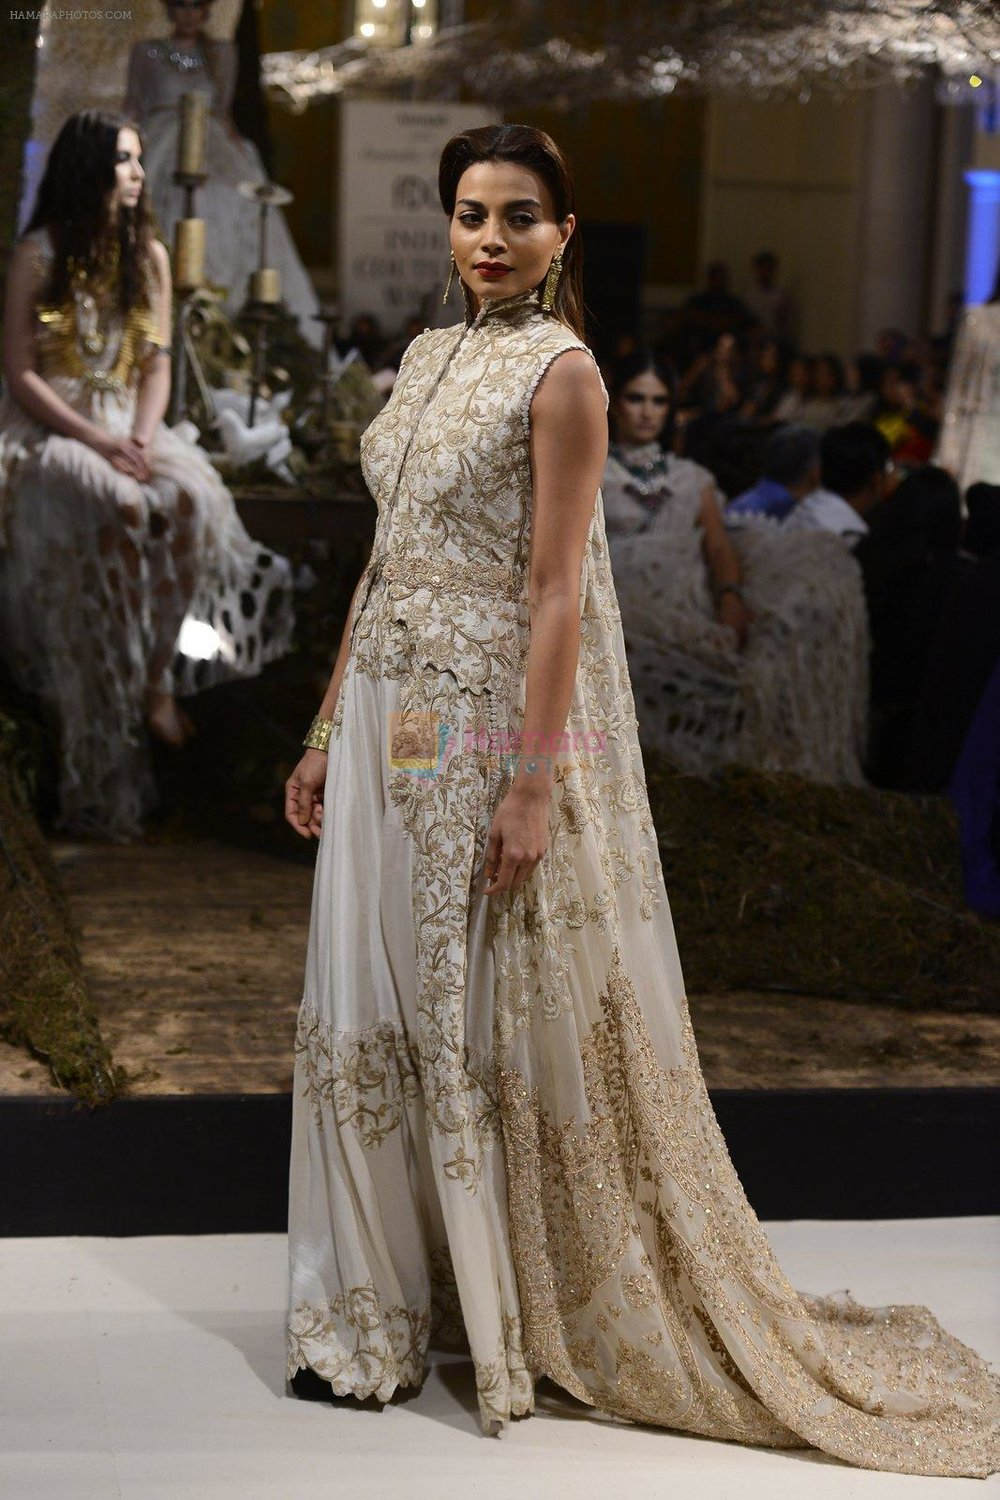 A-Model-during-Anamika-Khanna-showcase-When-Time-Stood-Still-at-the-FDCI-India-Couture-Week-2016-on-22-July-2016-2.jpg